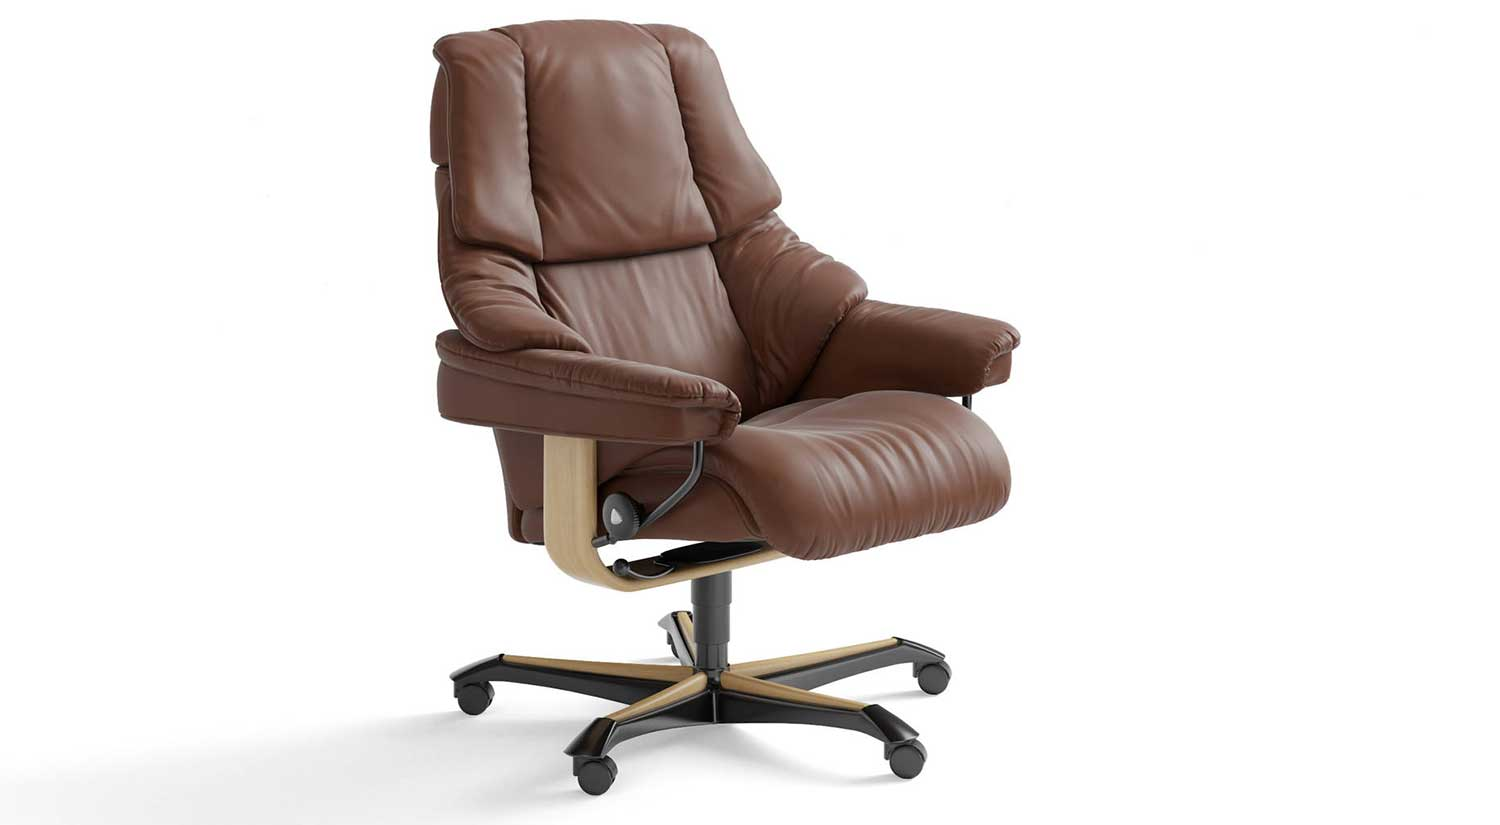 Home Office Chairs Reno Stressless Chair